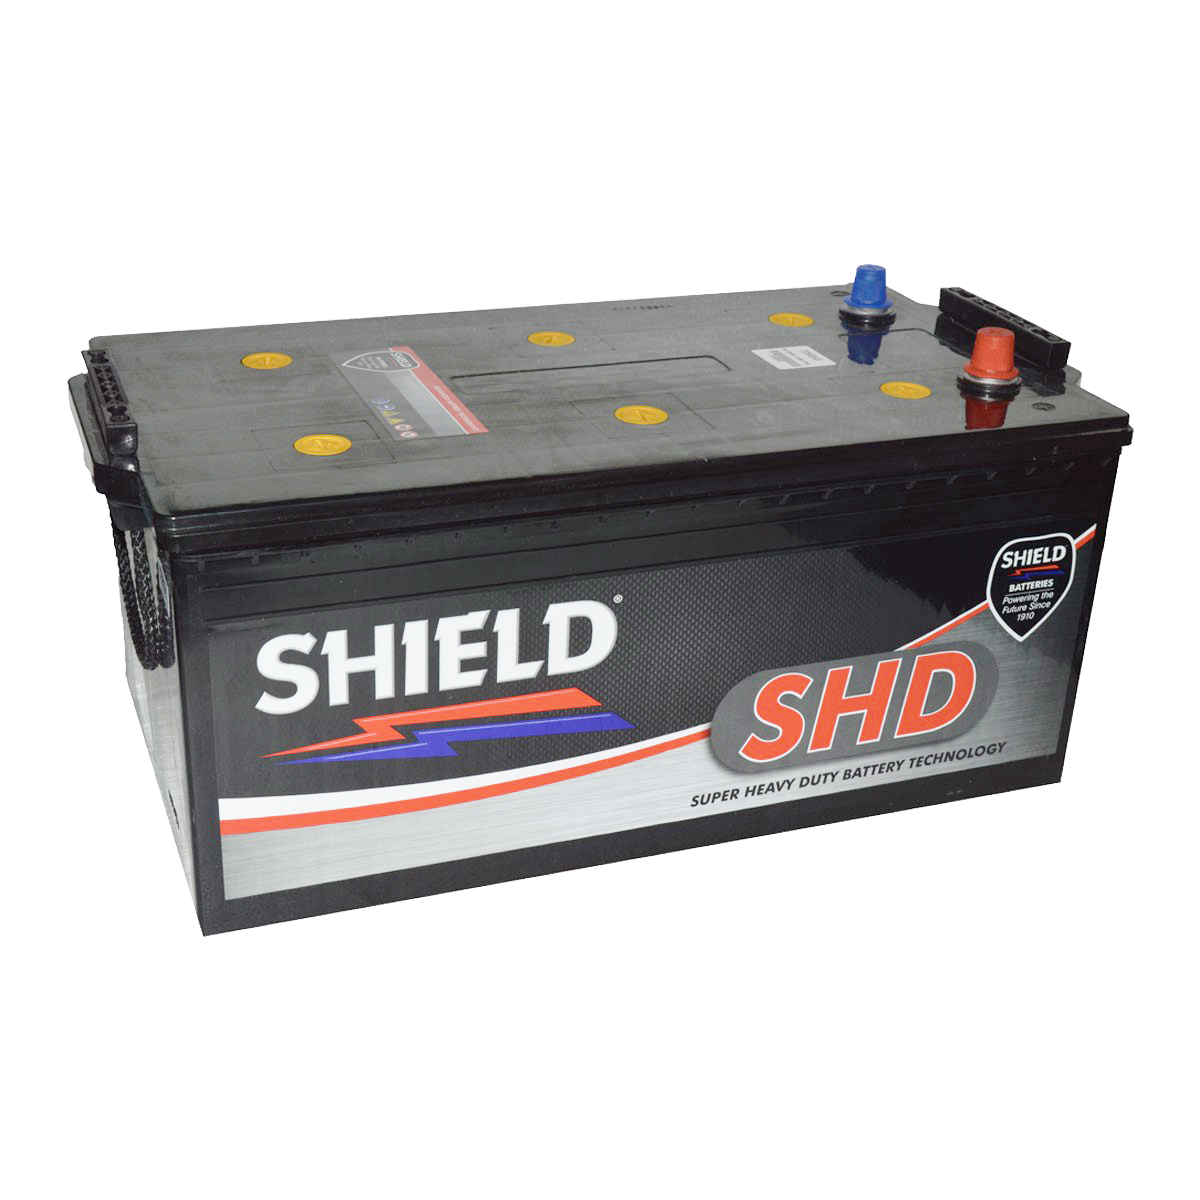 Shield-SHD-CV-Battery.jpg